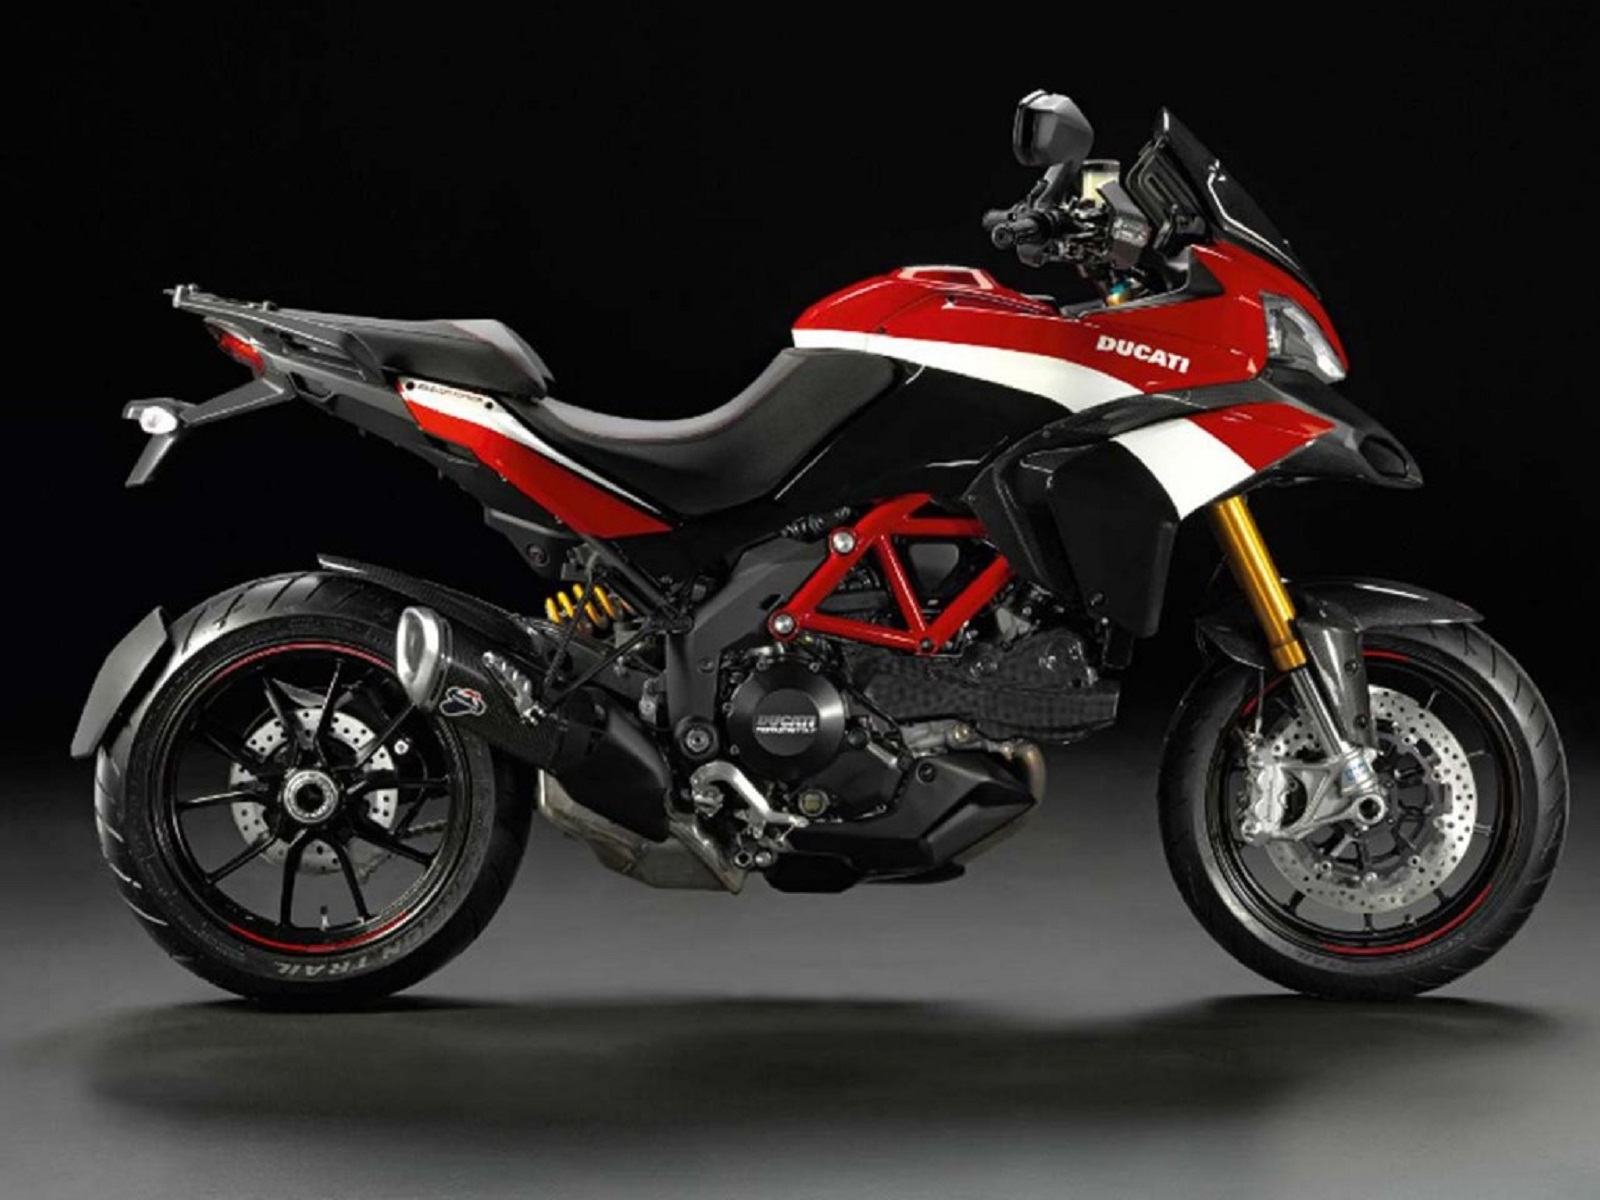 2012 ducati multistrada 1200 s pikes top speed. Black Bedroom Furniture Sets. Home Design Ideas